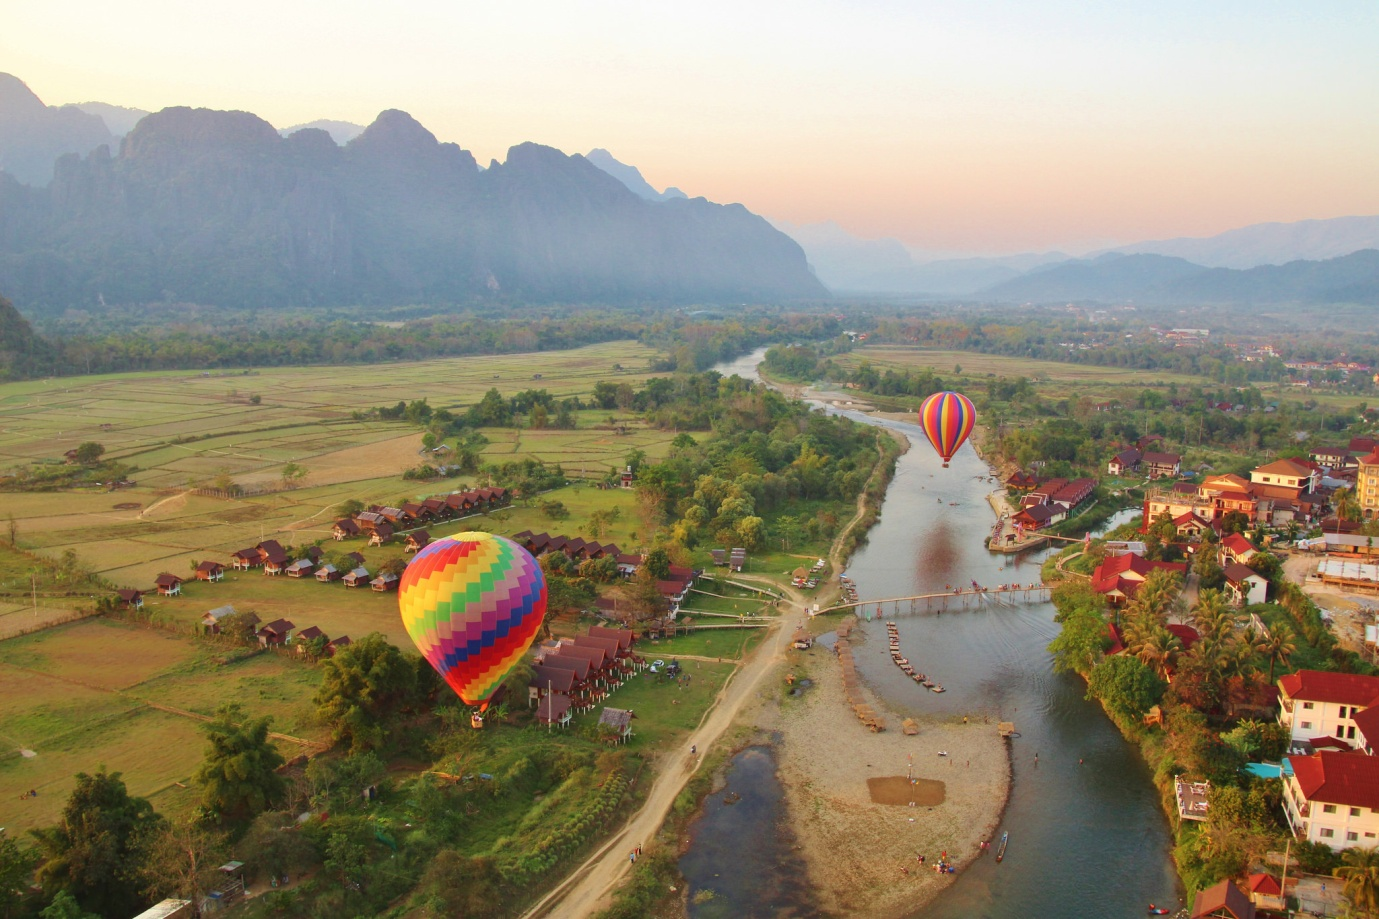 Balloons over Vang Vieng